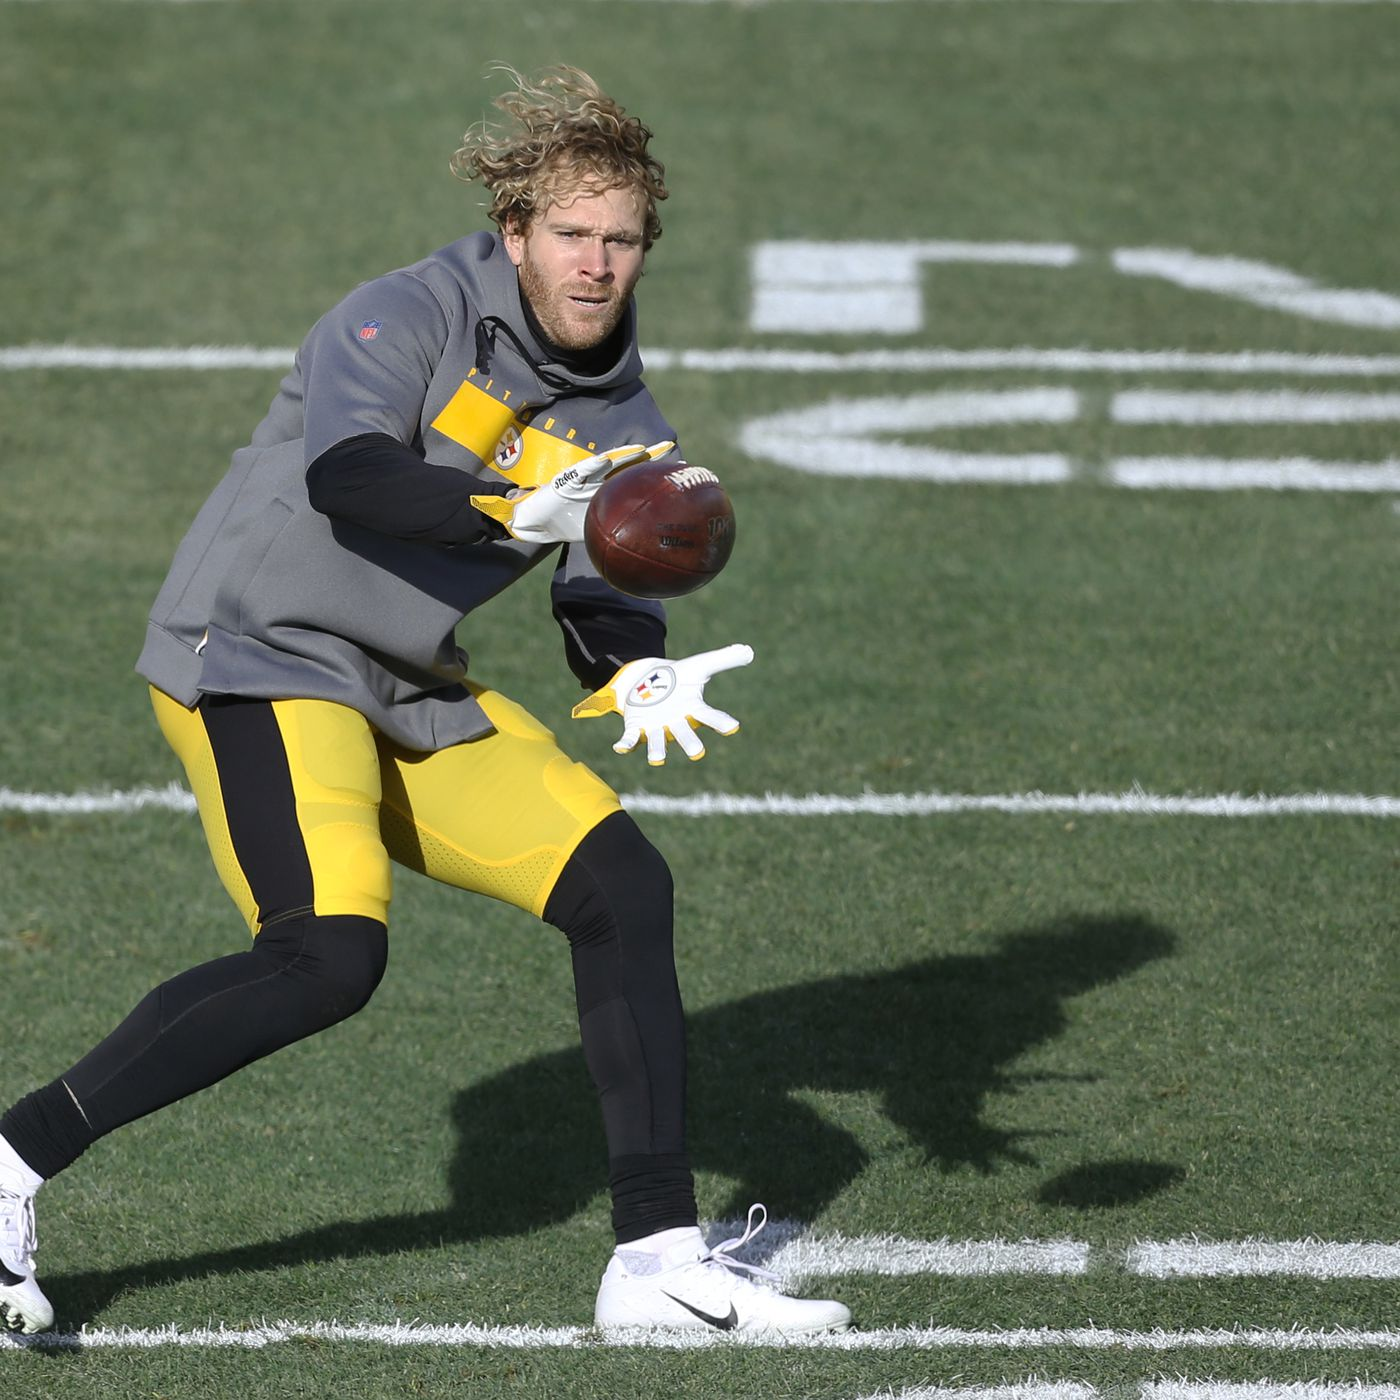 Cassius Marsh talks being a journeyman, and the Steelers ...